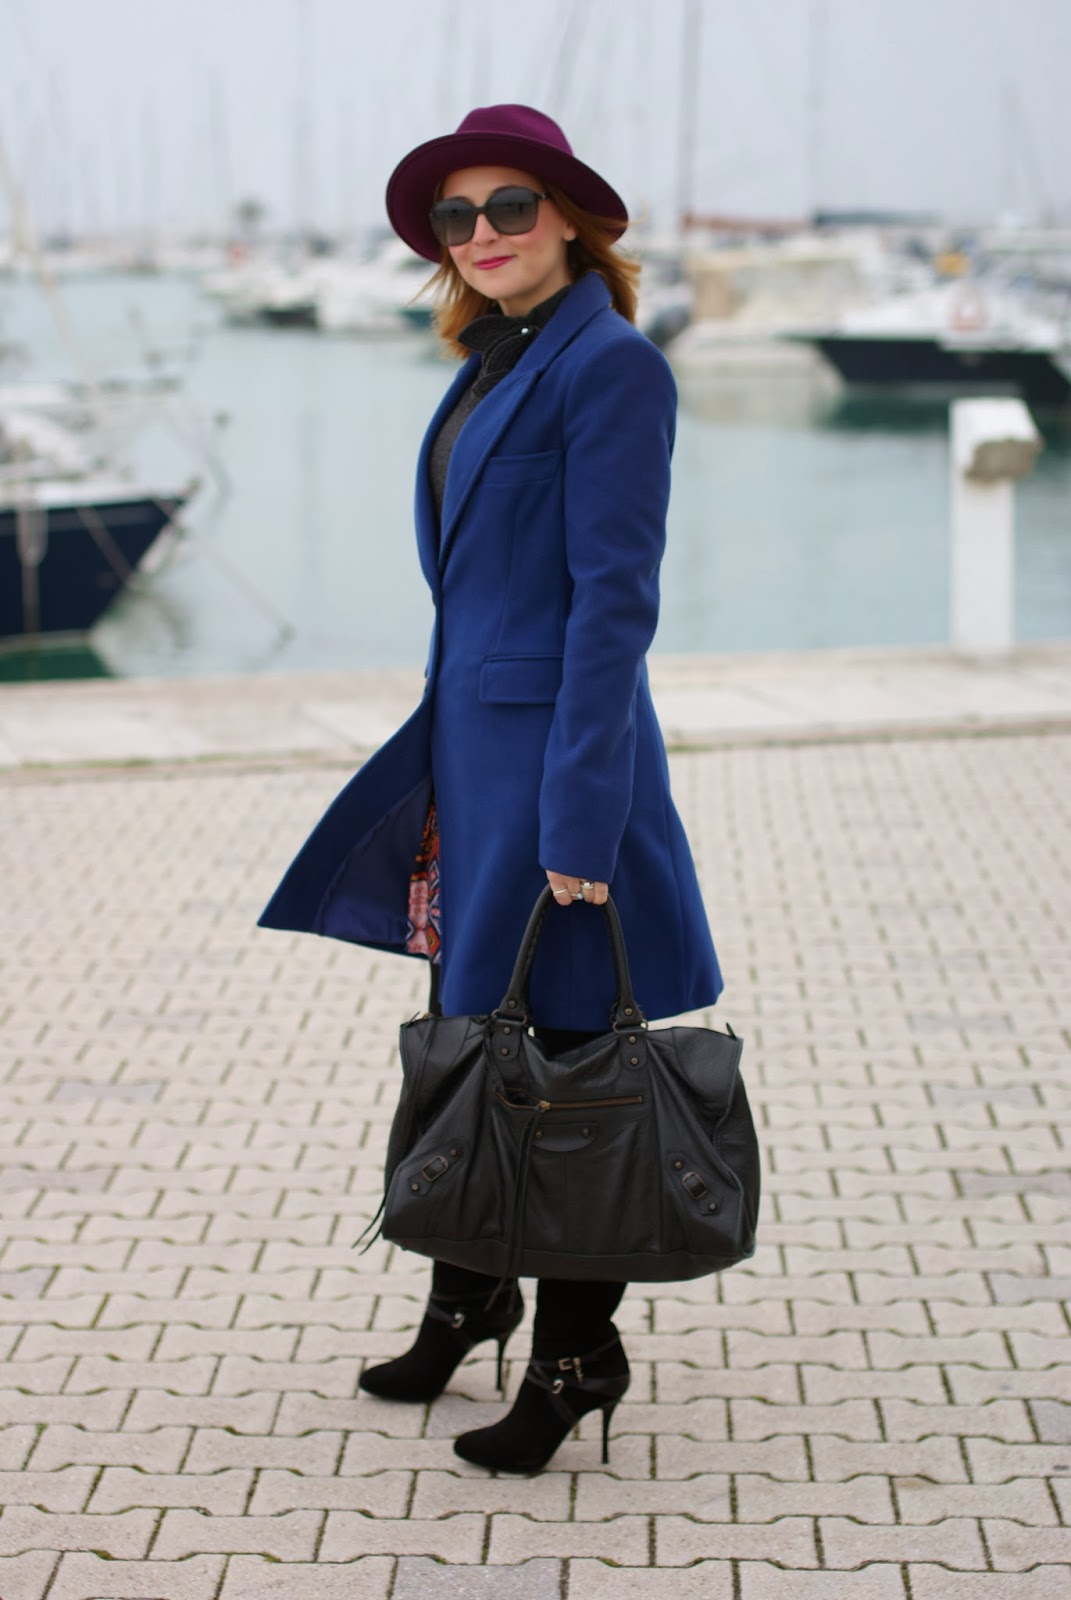 Paola Frani cappotto, Ecua-Andino hat, Cesare Paciotti boots, cobalt blue coat, Balenciaga work bag, Fashion and Cookies, fashion blogger